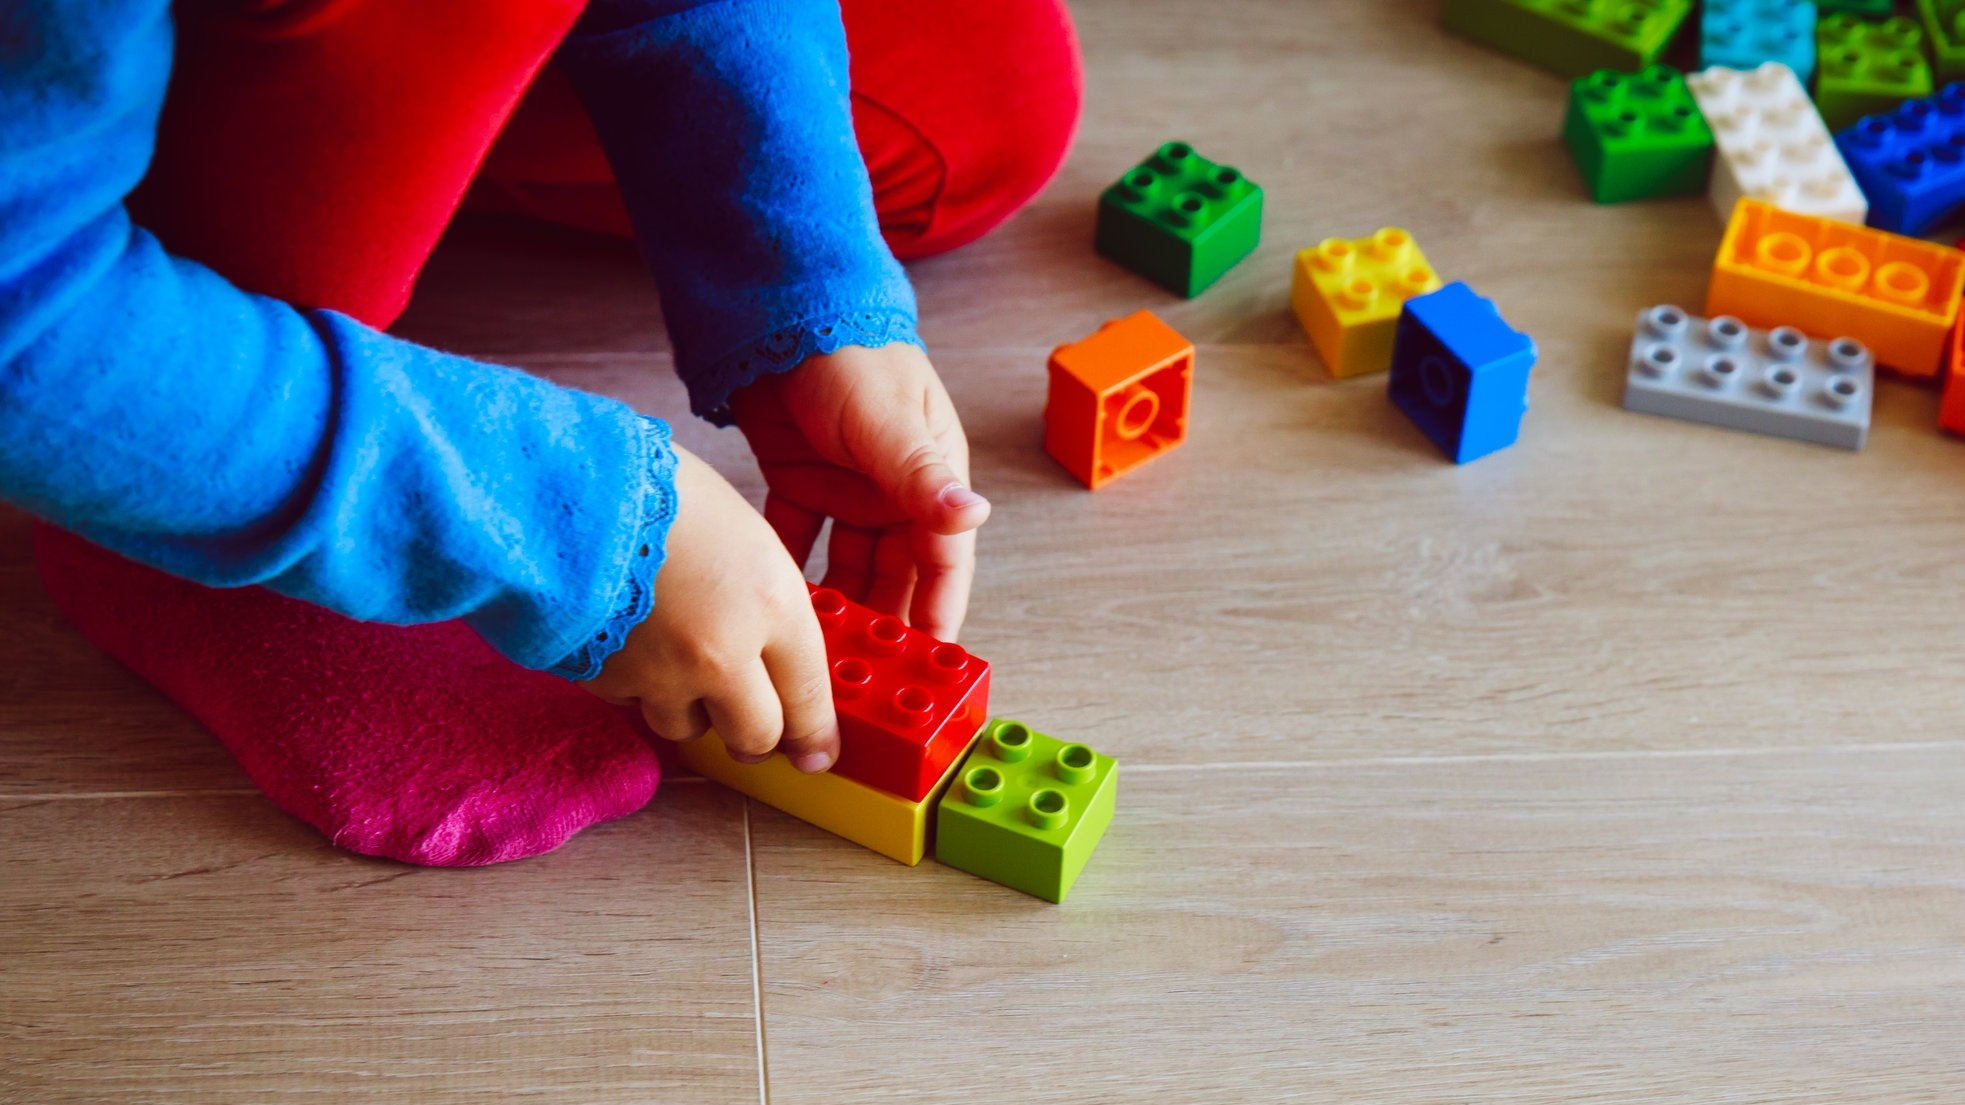 The ELC's Childhood Curriculum places an emphasis on all aspects of a child's growth and development. -